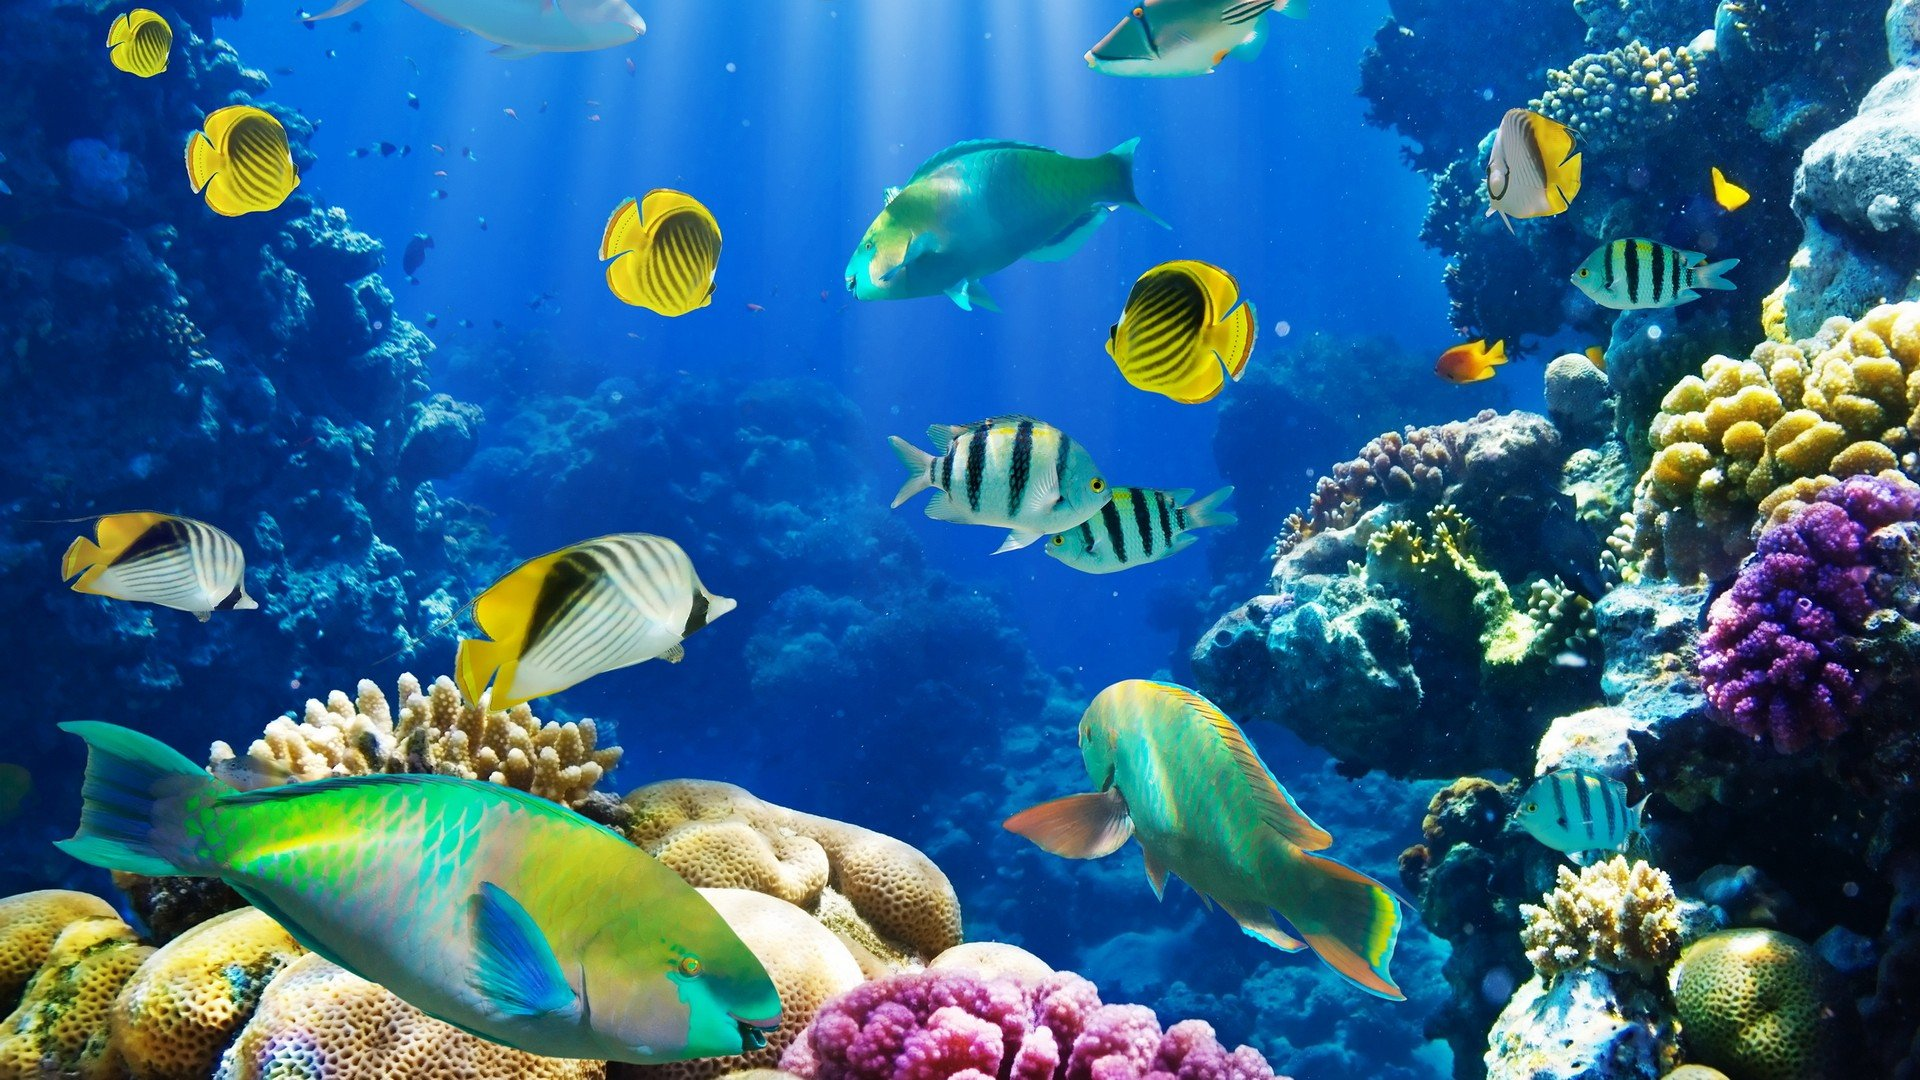 Nature fish coral reef exotic wallpaper 1920x1080 260738 1920x1080